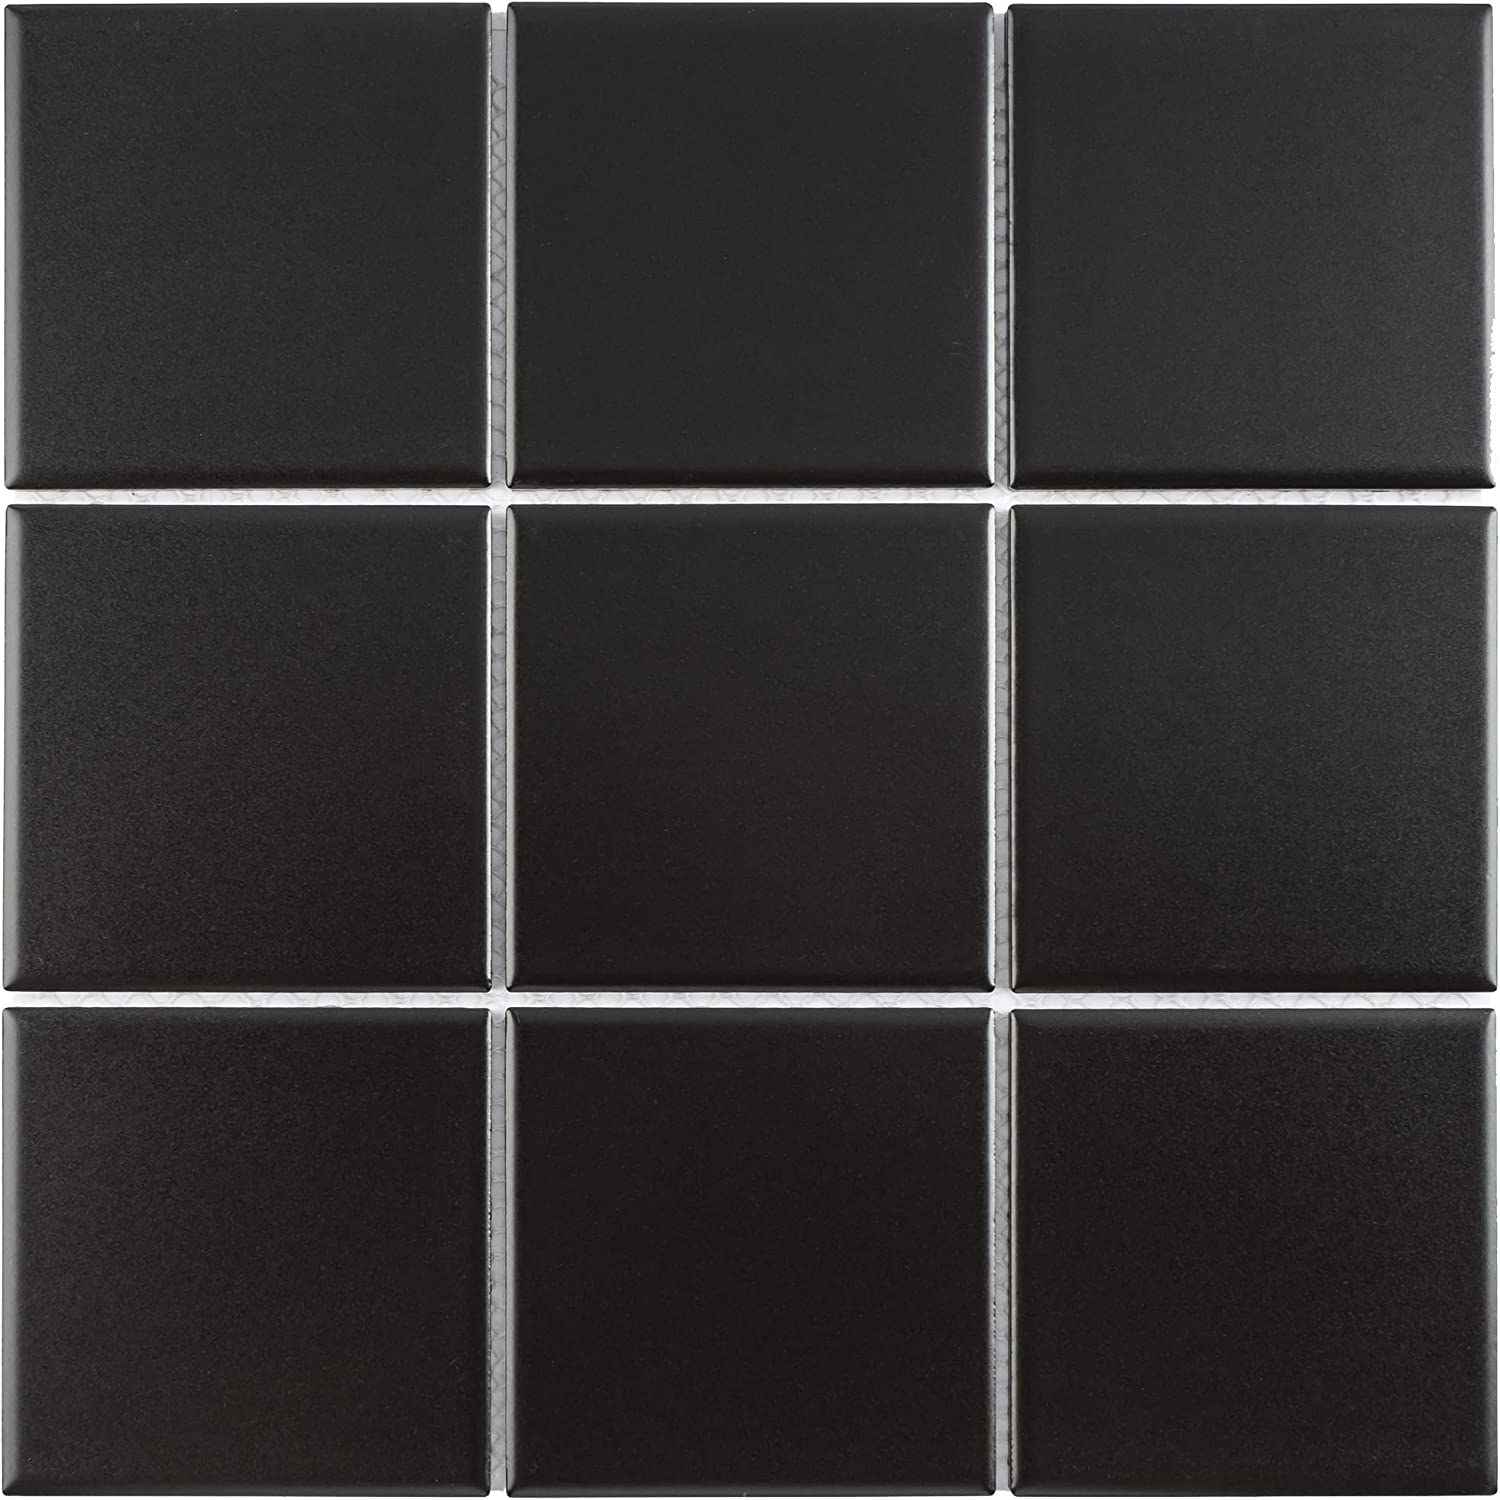 Limited to 1pc per Person Small Sample Swatch Floor /& Wall Tile Mosaic Tile Matt Finish BT-PM14 4 x 4 Square Black Porcelain